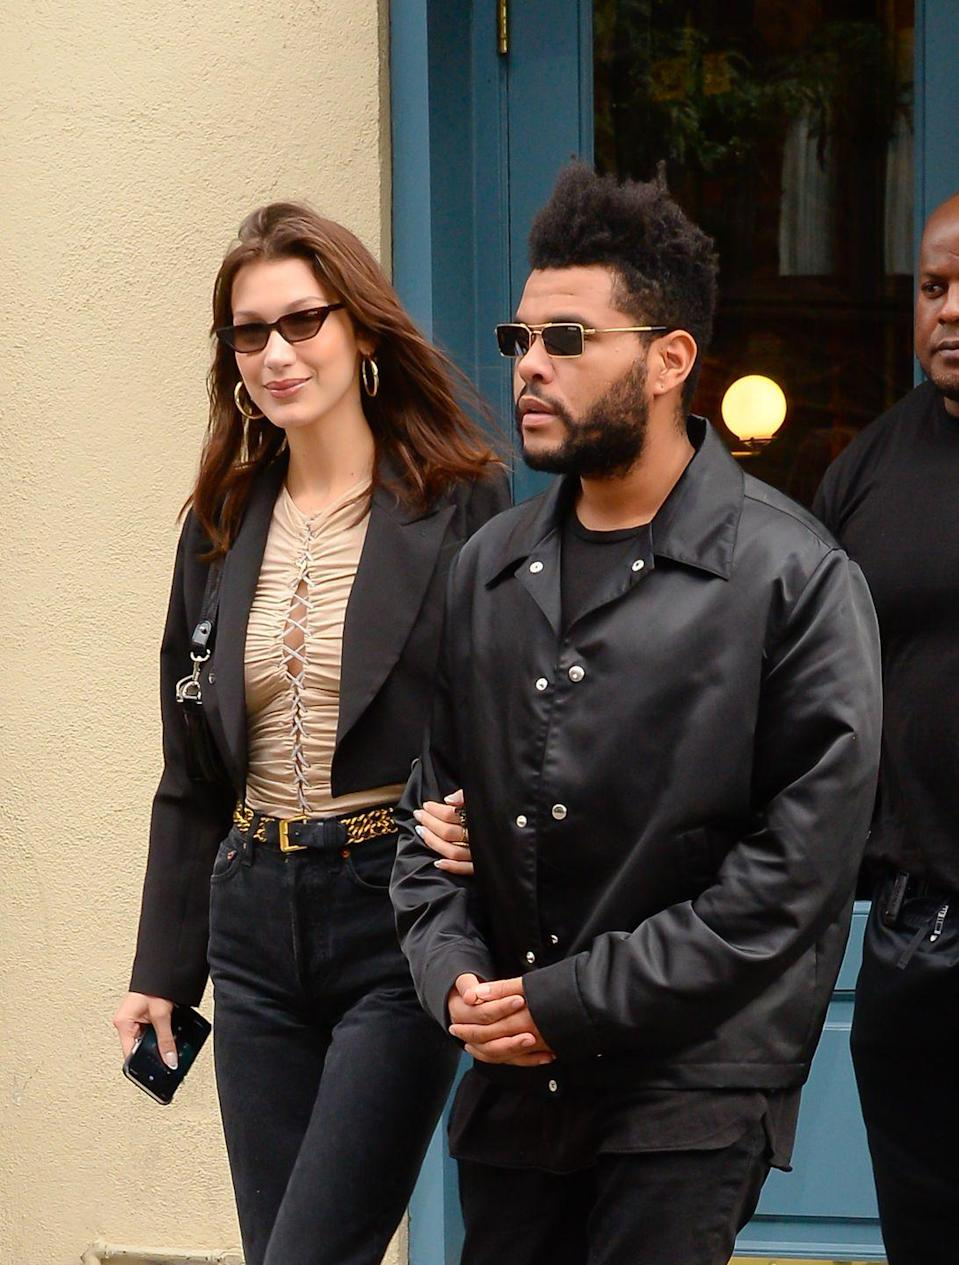 <p>When The Weeknd reunited with ex-girlfriend Bella Hadid, he was photographed rocking a very full beard along with his typical high and tight hairstyle. </p>